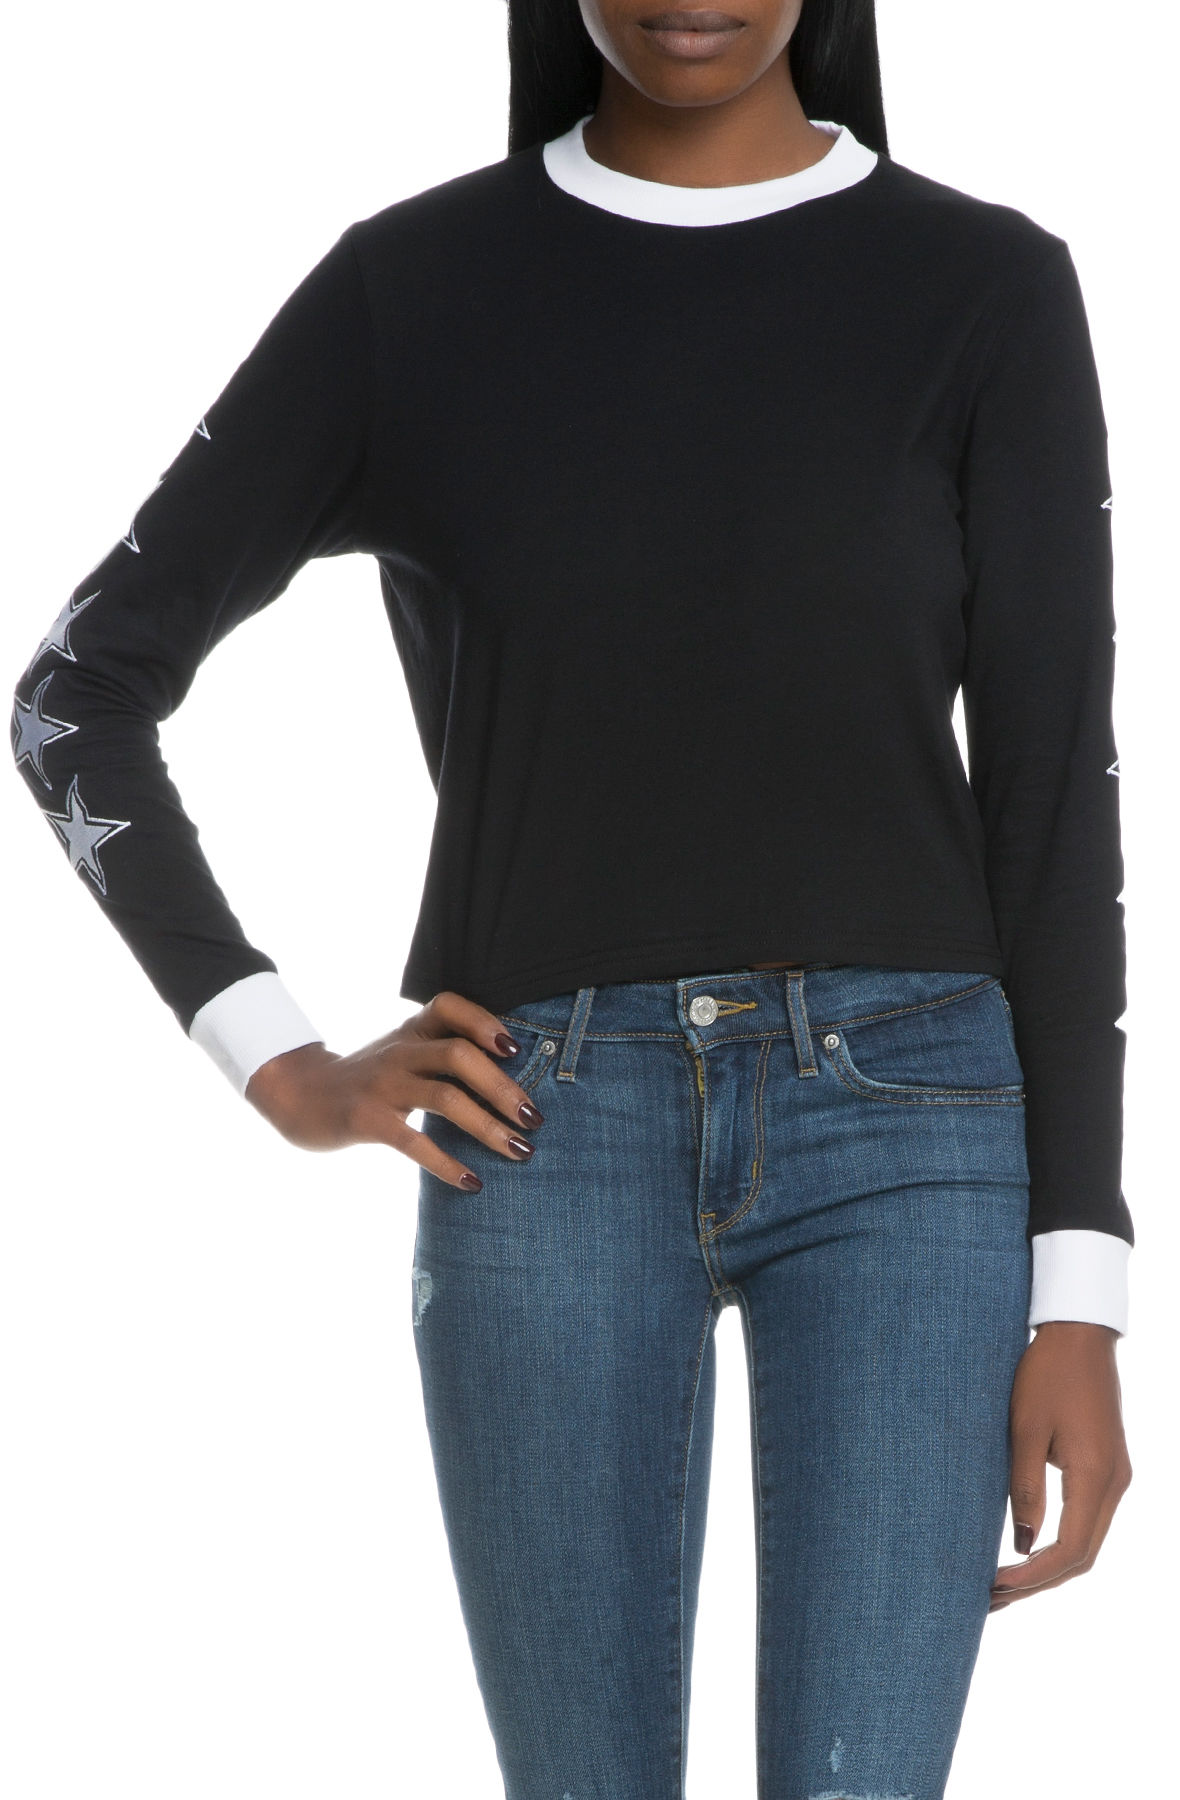 Image of The Stars Align Long Sleeve T-Shirt With Contrast Rib & Star Sleeve Embroidery in Black